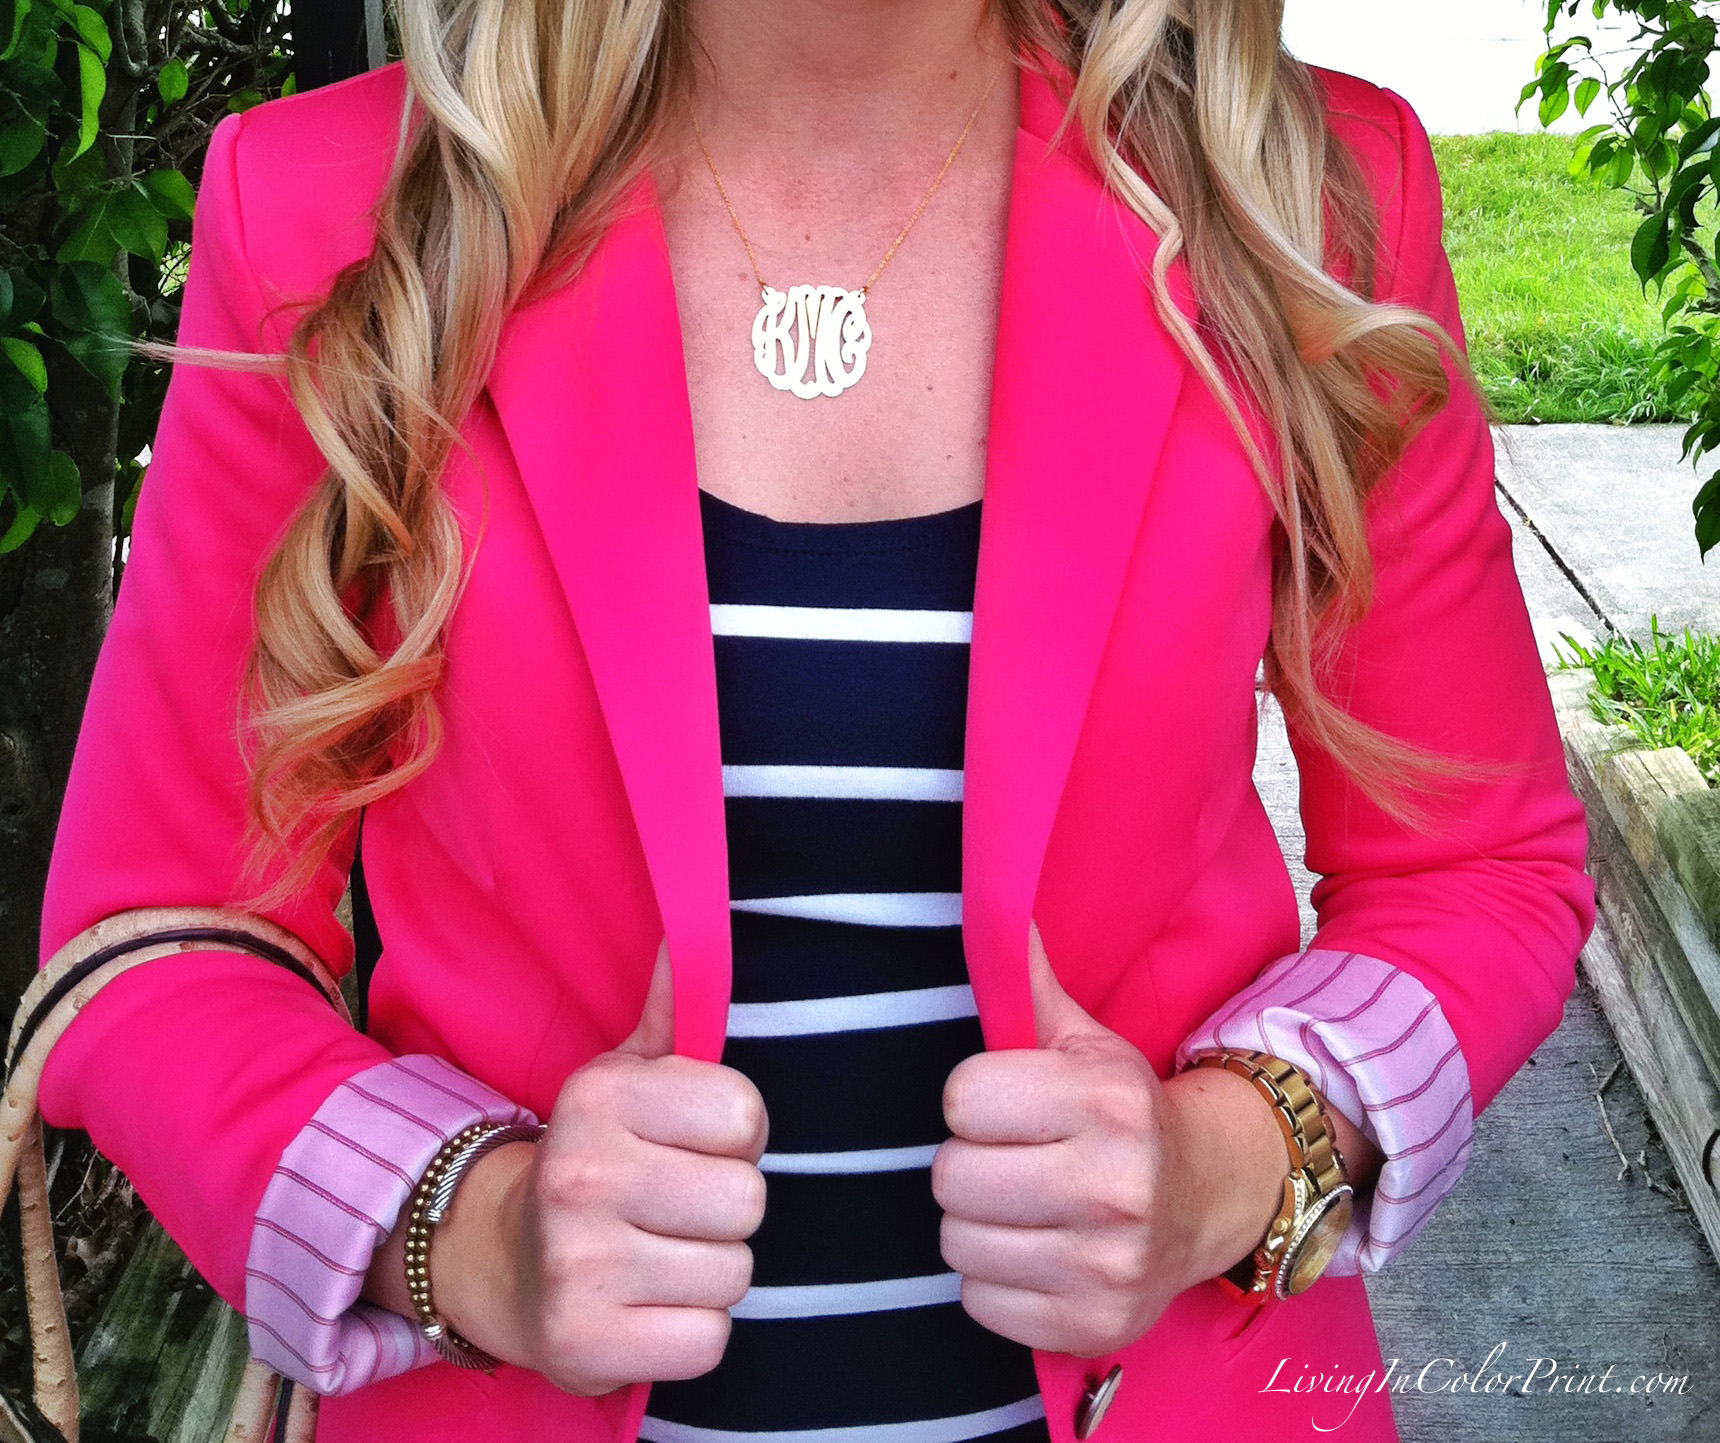 Eves Addiction Monogram Necklace and Pink Blazer